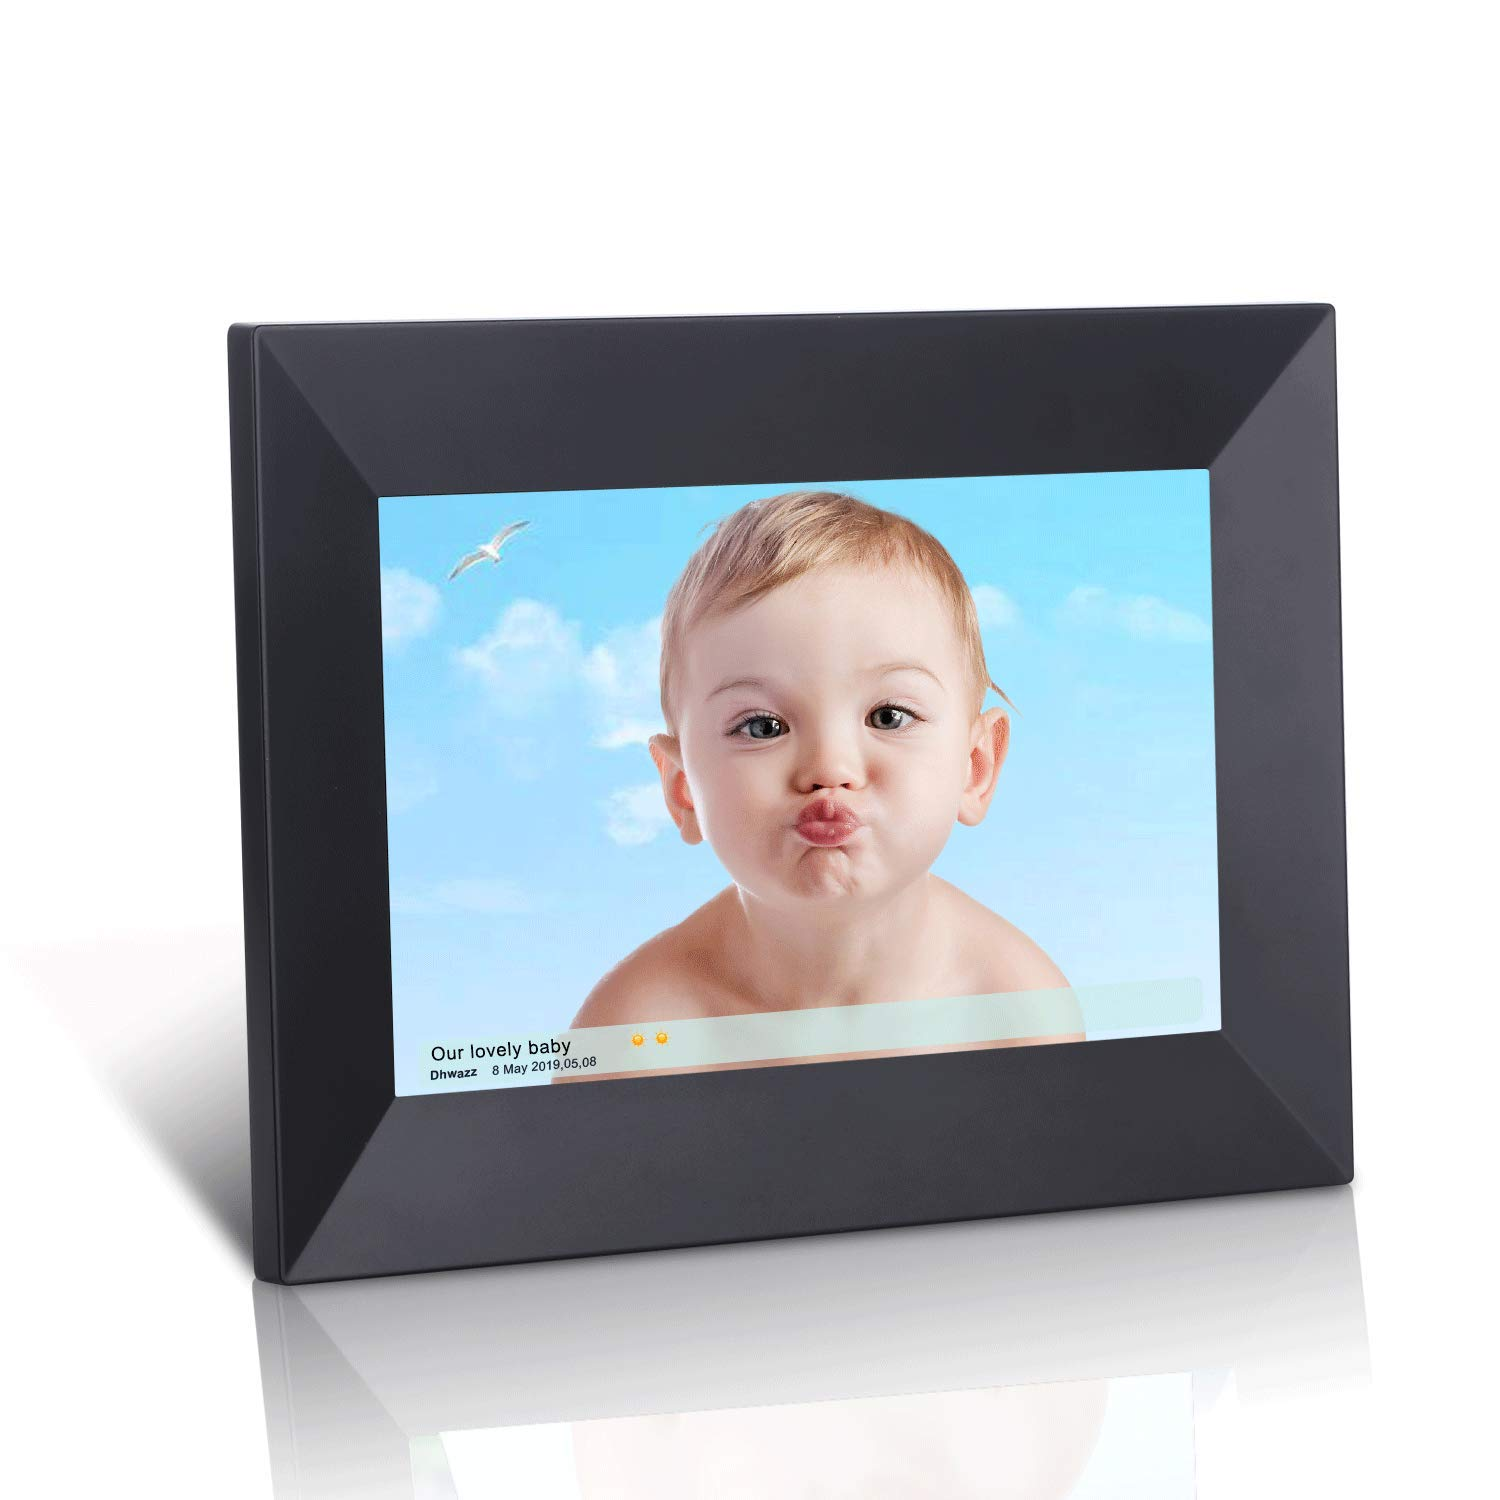 Dhwazz 8 Inch WiFi Digital Photo Frame, IPS Electronic Picture Frame with LCD Touch Screen, 8GB Internal Storage, Wall-Mountable, Display and Share Photos Instantly via Mobile APP